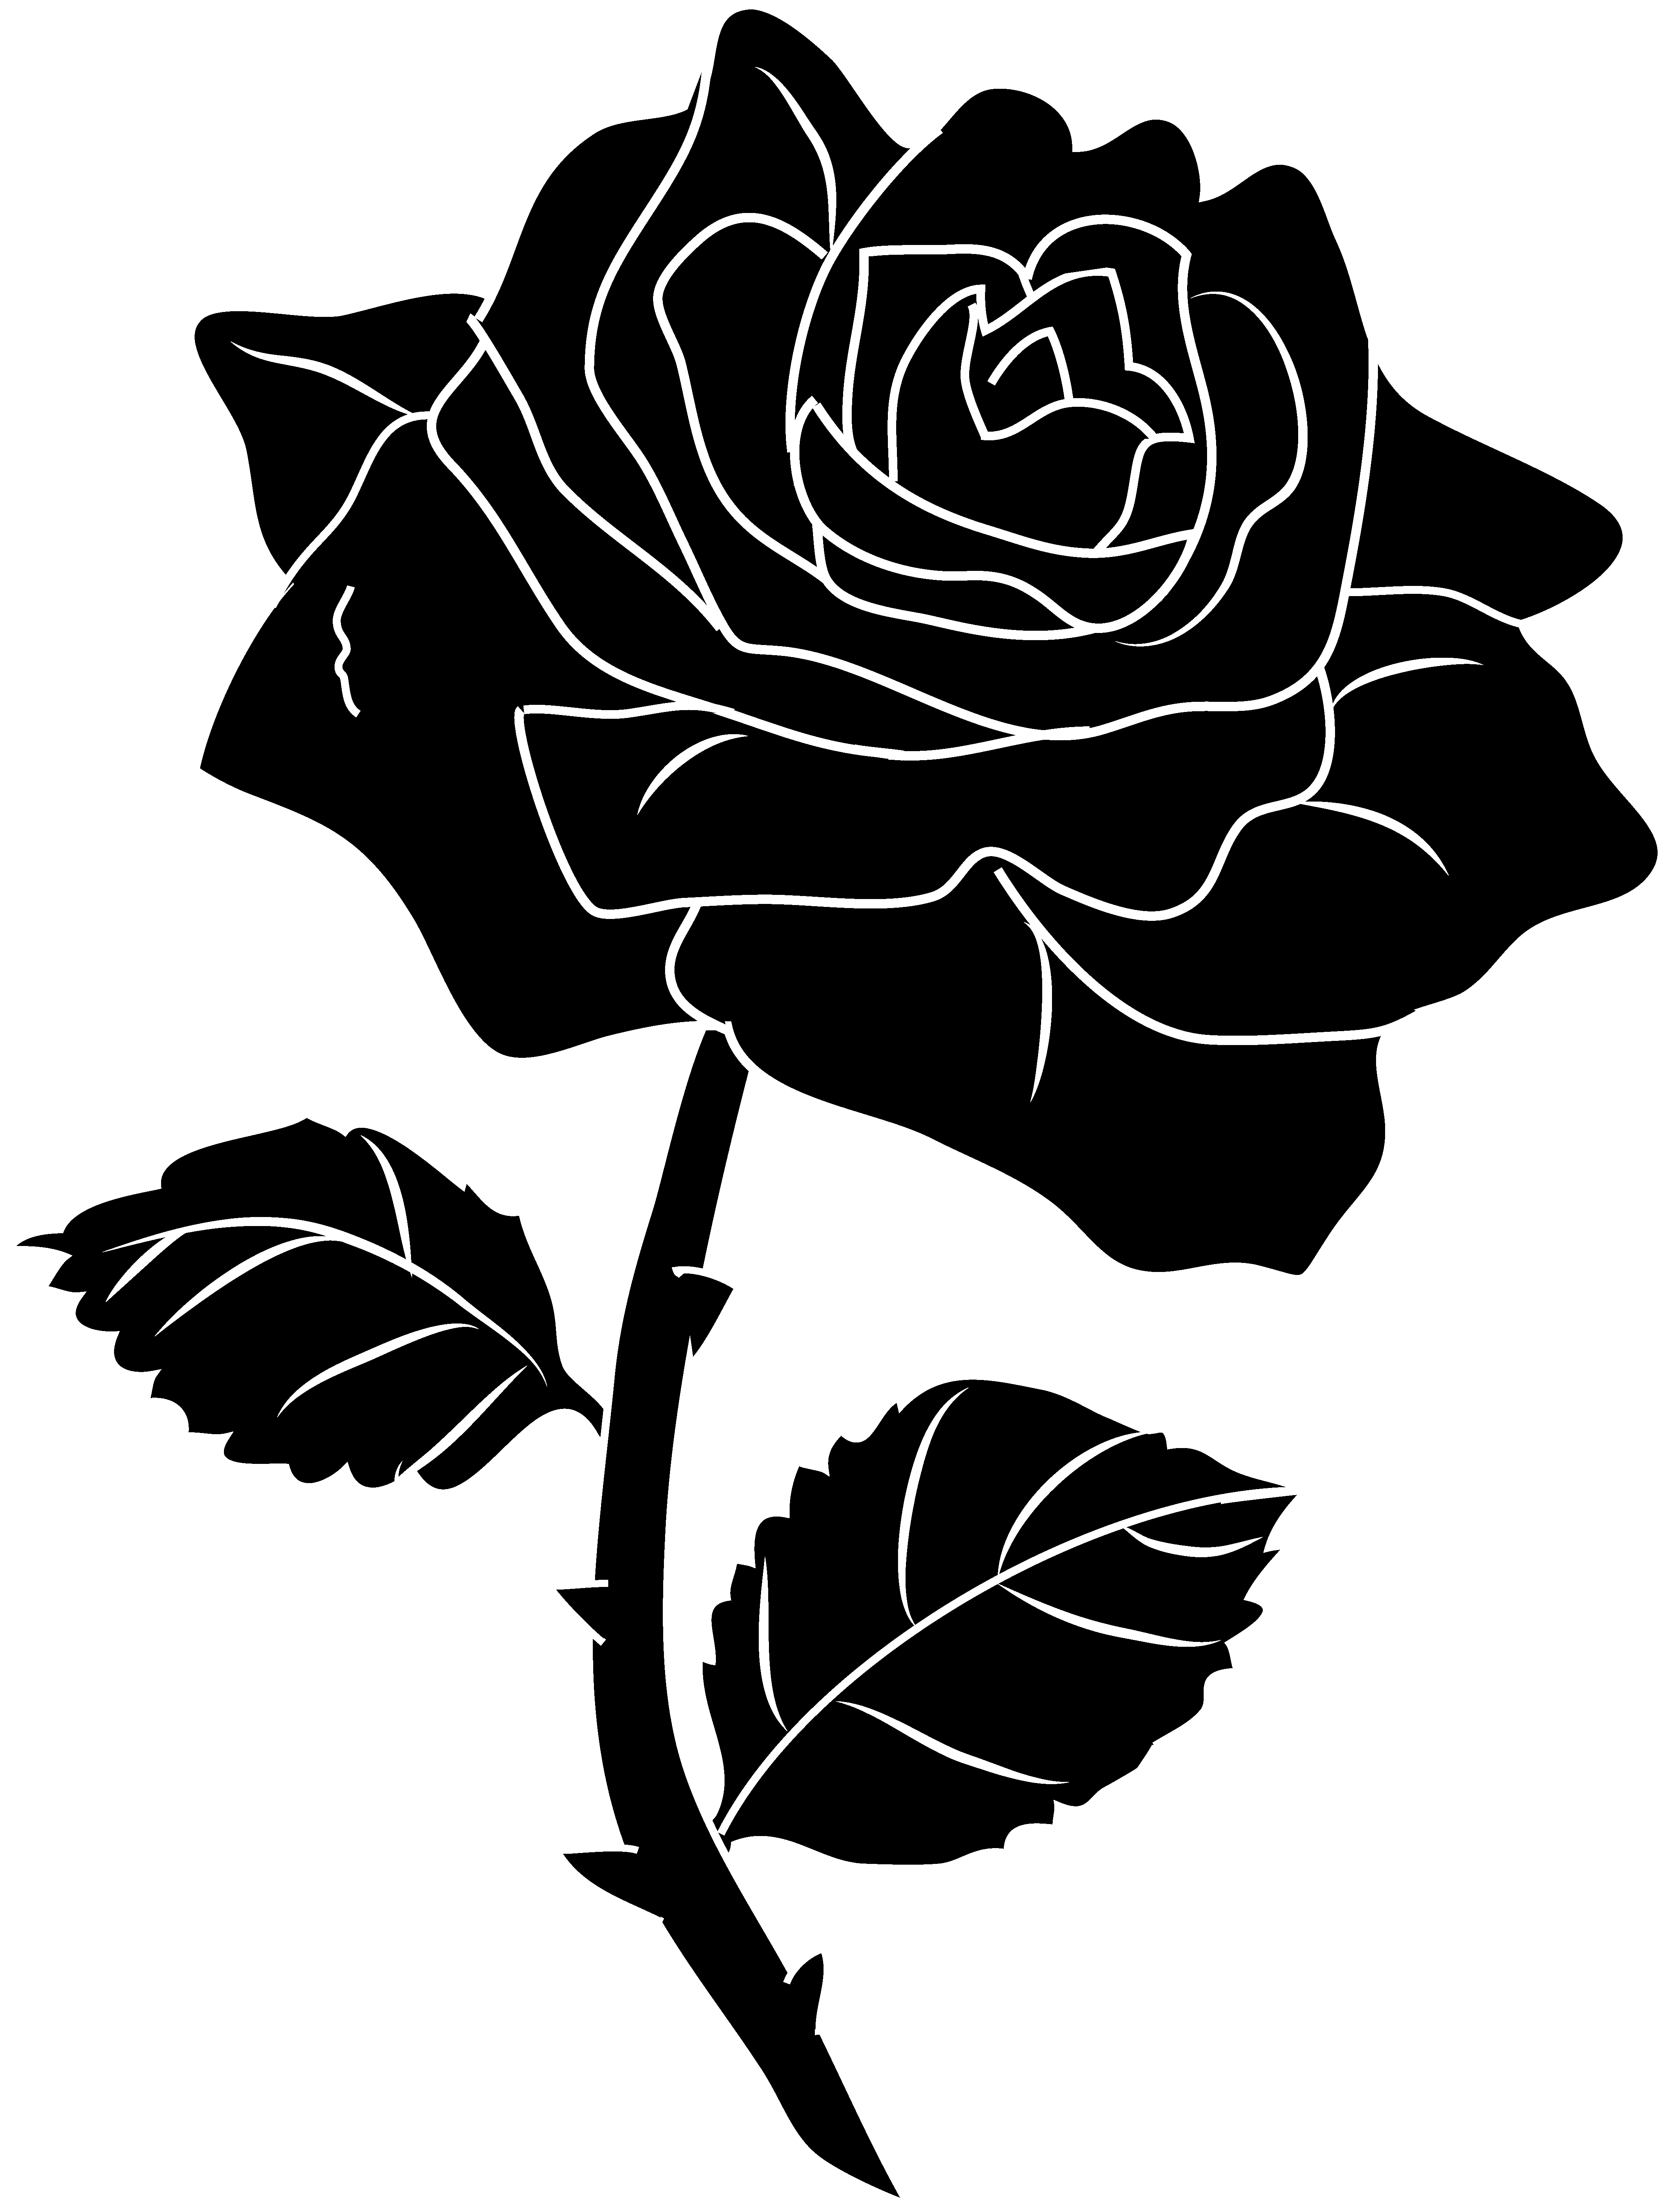 svg free stock Rose Flowers Clip Art Black And White